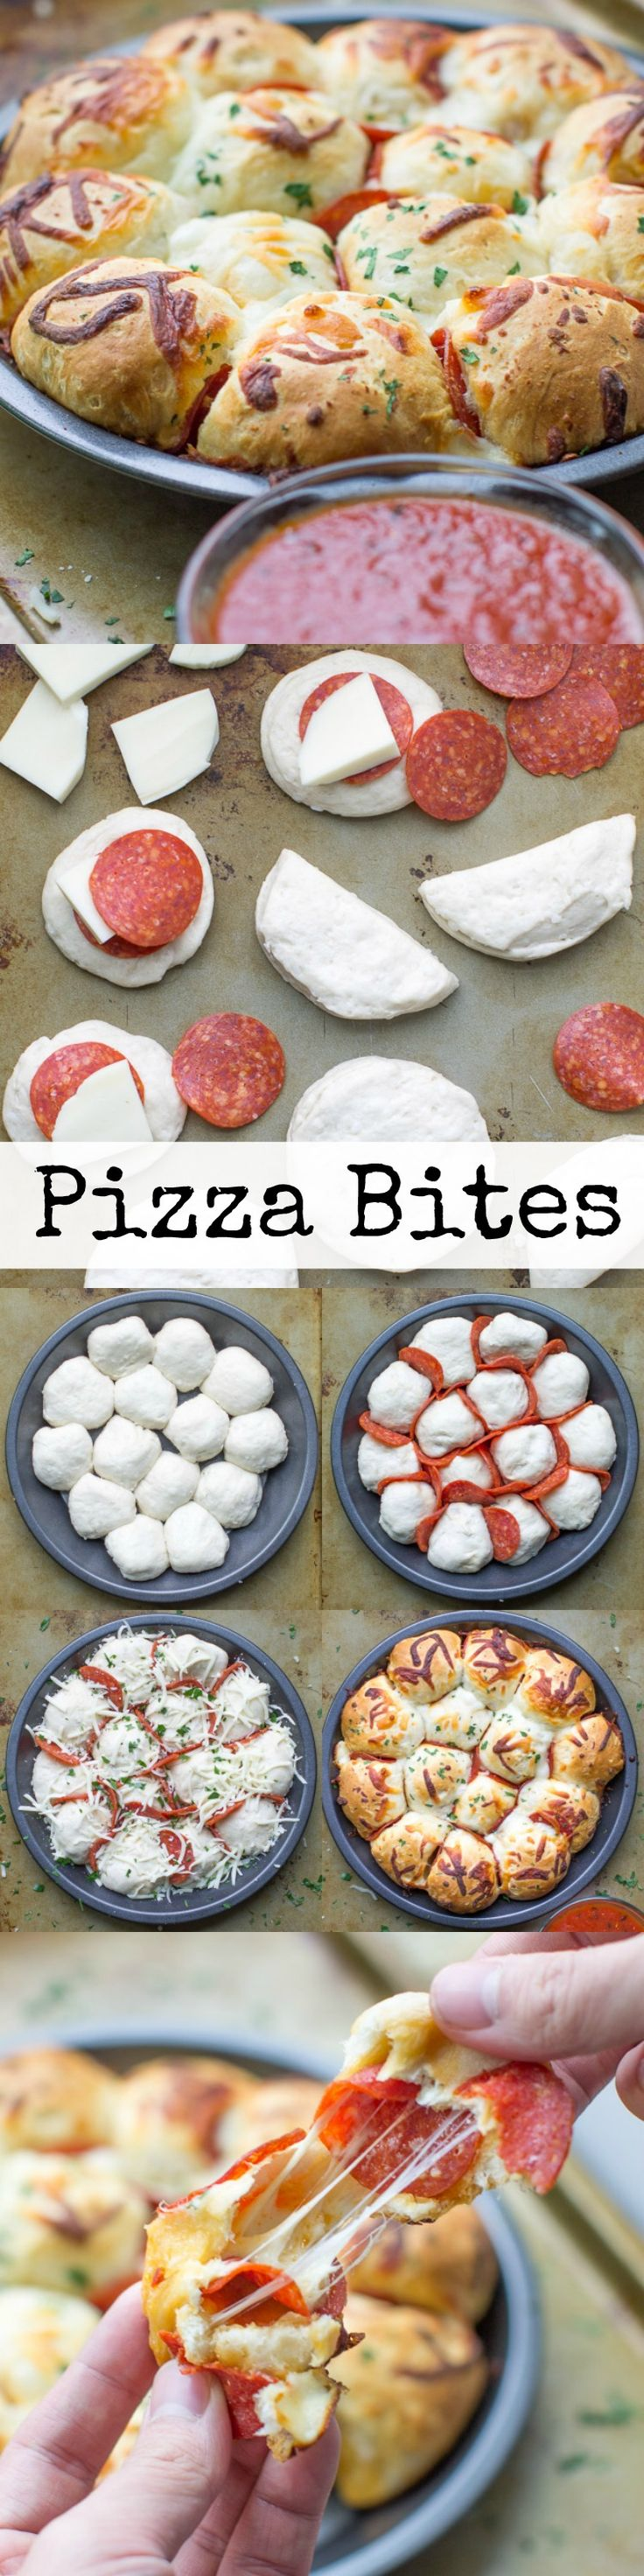 Skip the pizza delivery! Enjoy these easy, cheesy pepperoni Pizza Bites hot and fresh from the oven. You'll want to double the batch! Pinned over 11,000 times!